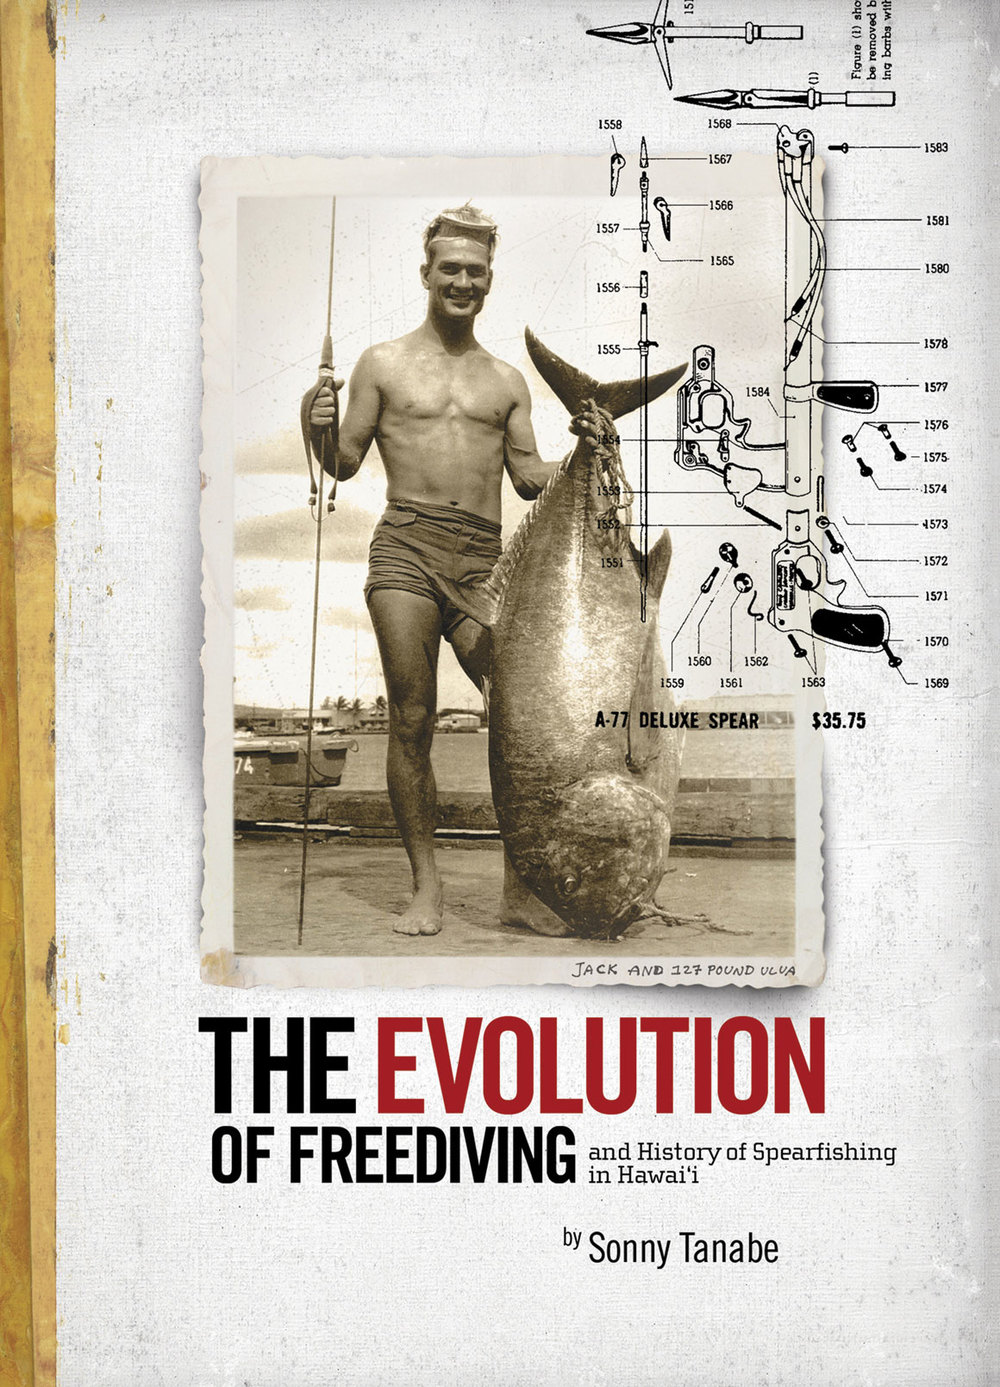 THE EVOLUTION OF FREEDIVING